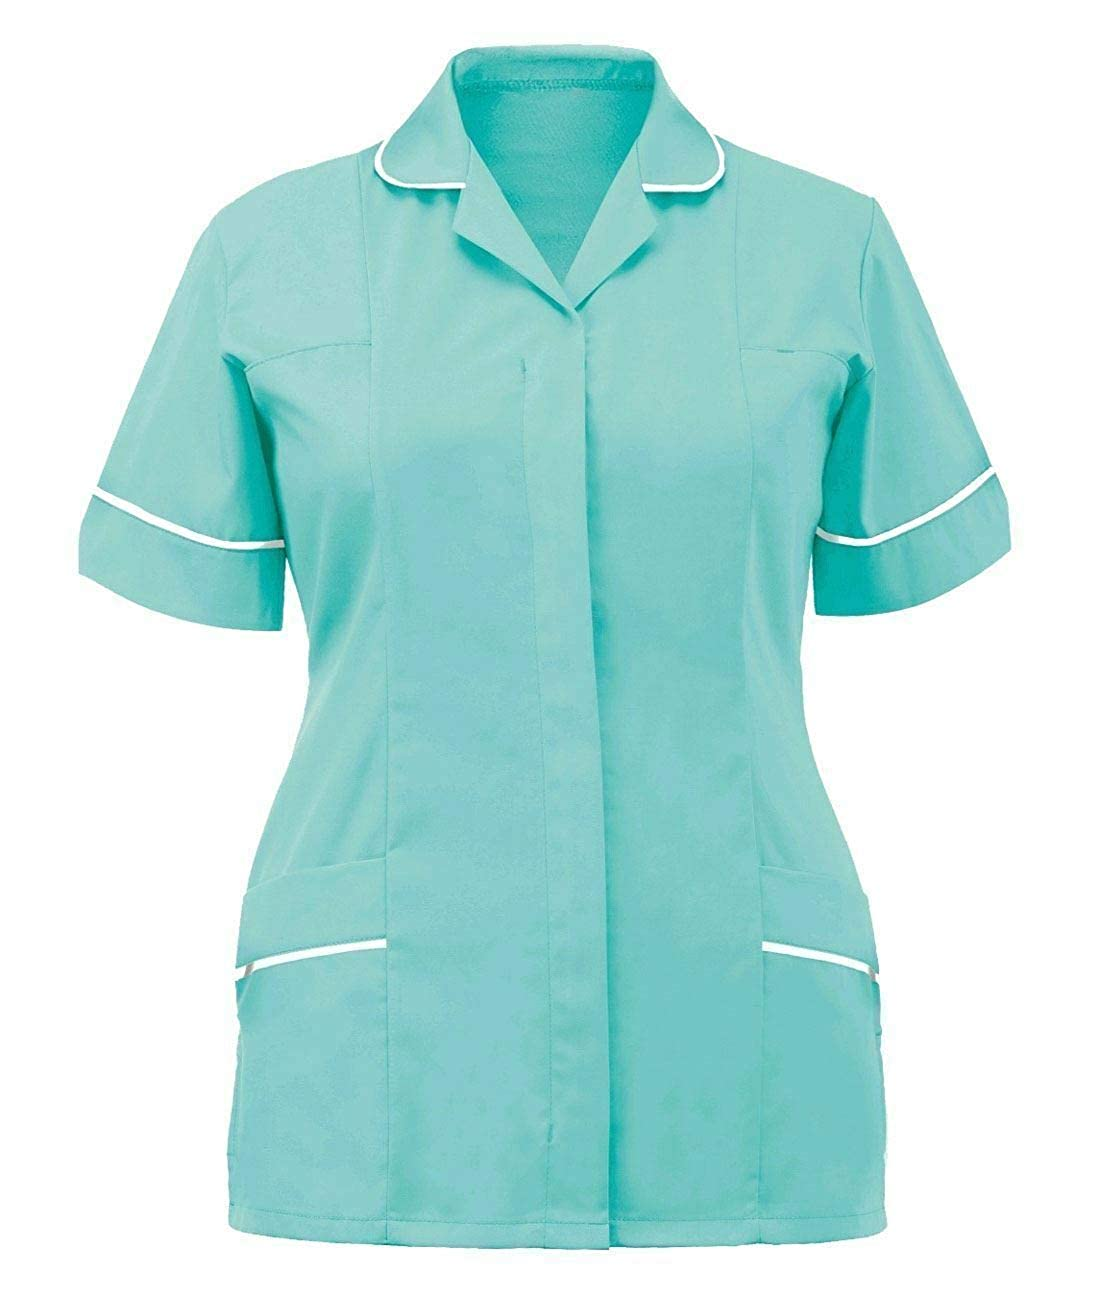 Womens Hospital Clinic Nurse Collared Tunic Ladies Healthcare Work Uniform Top